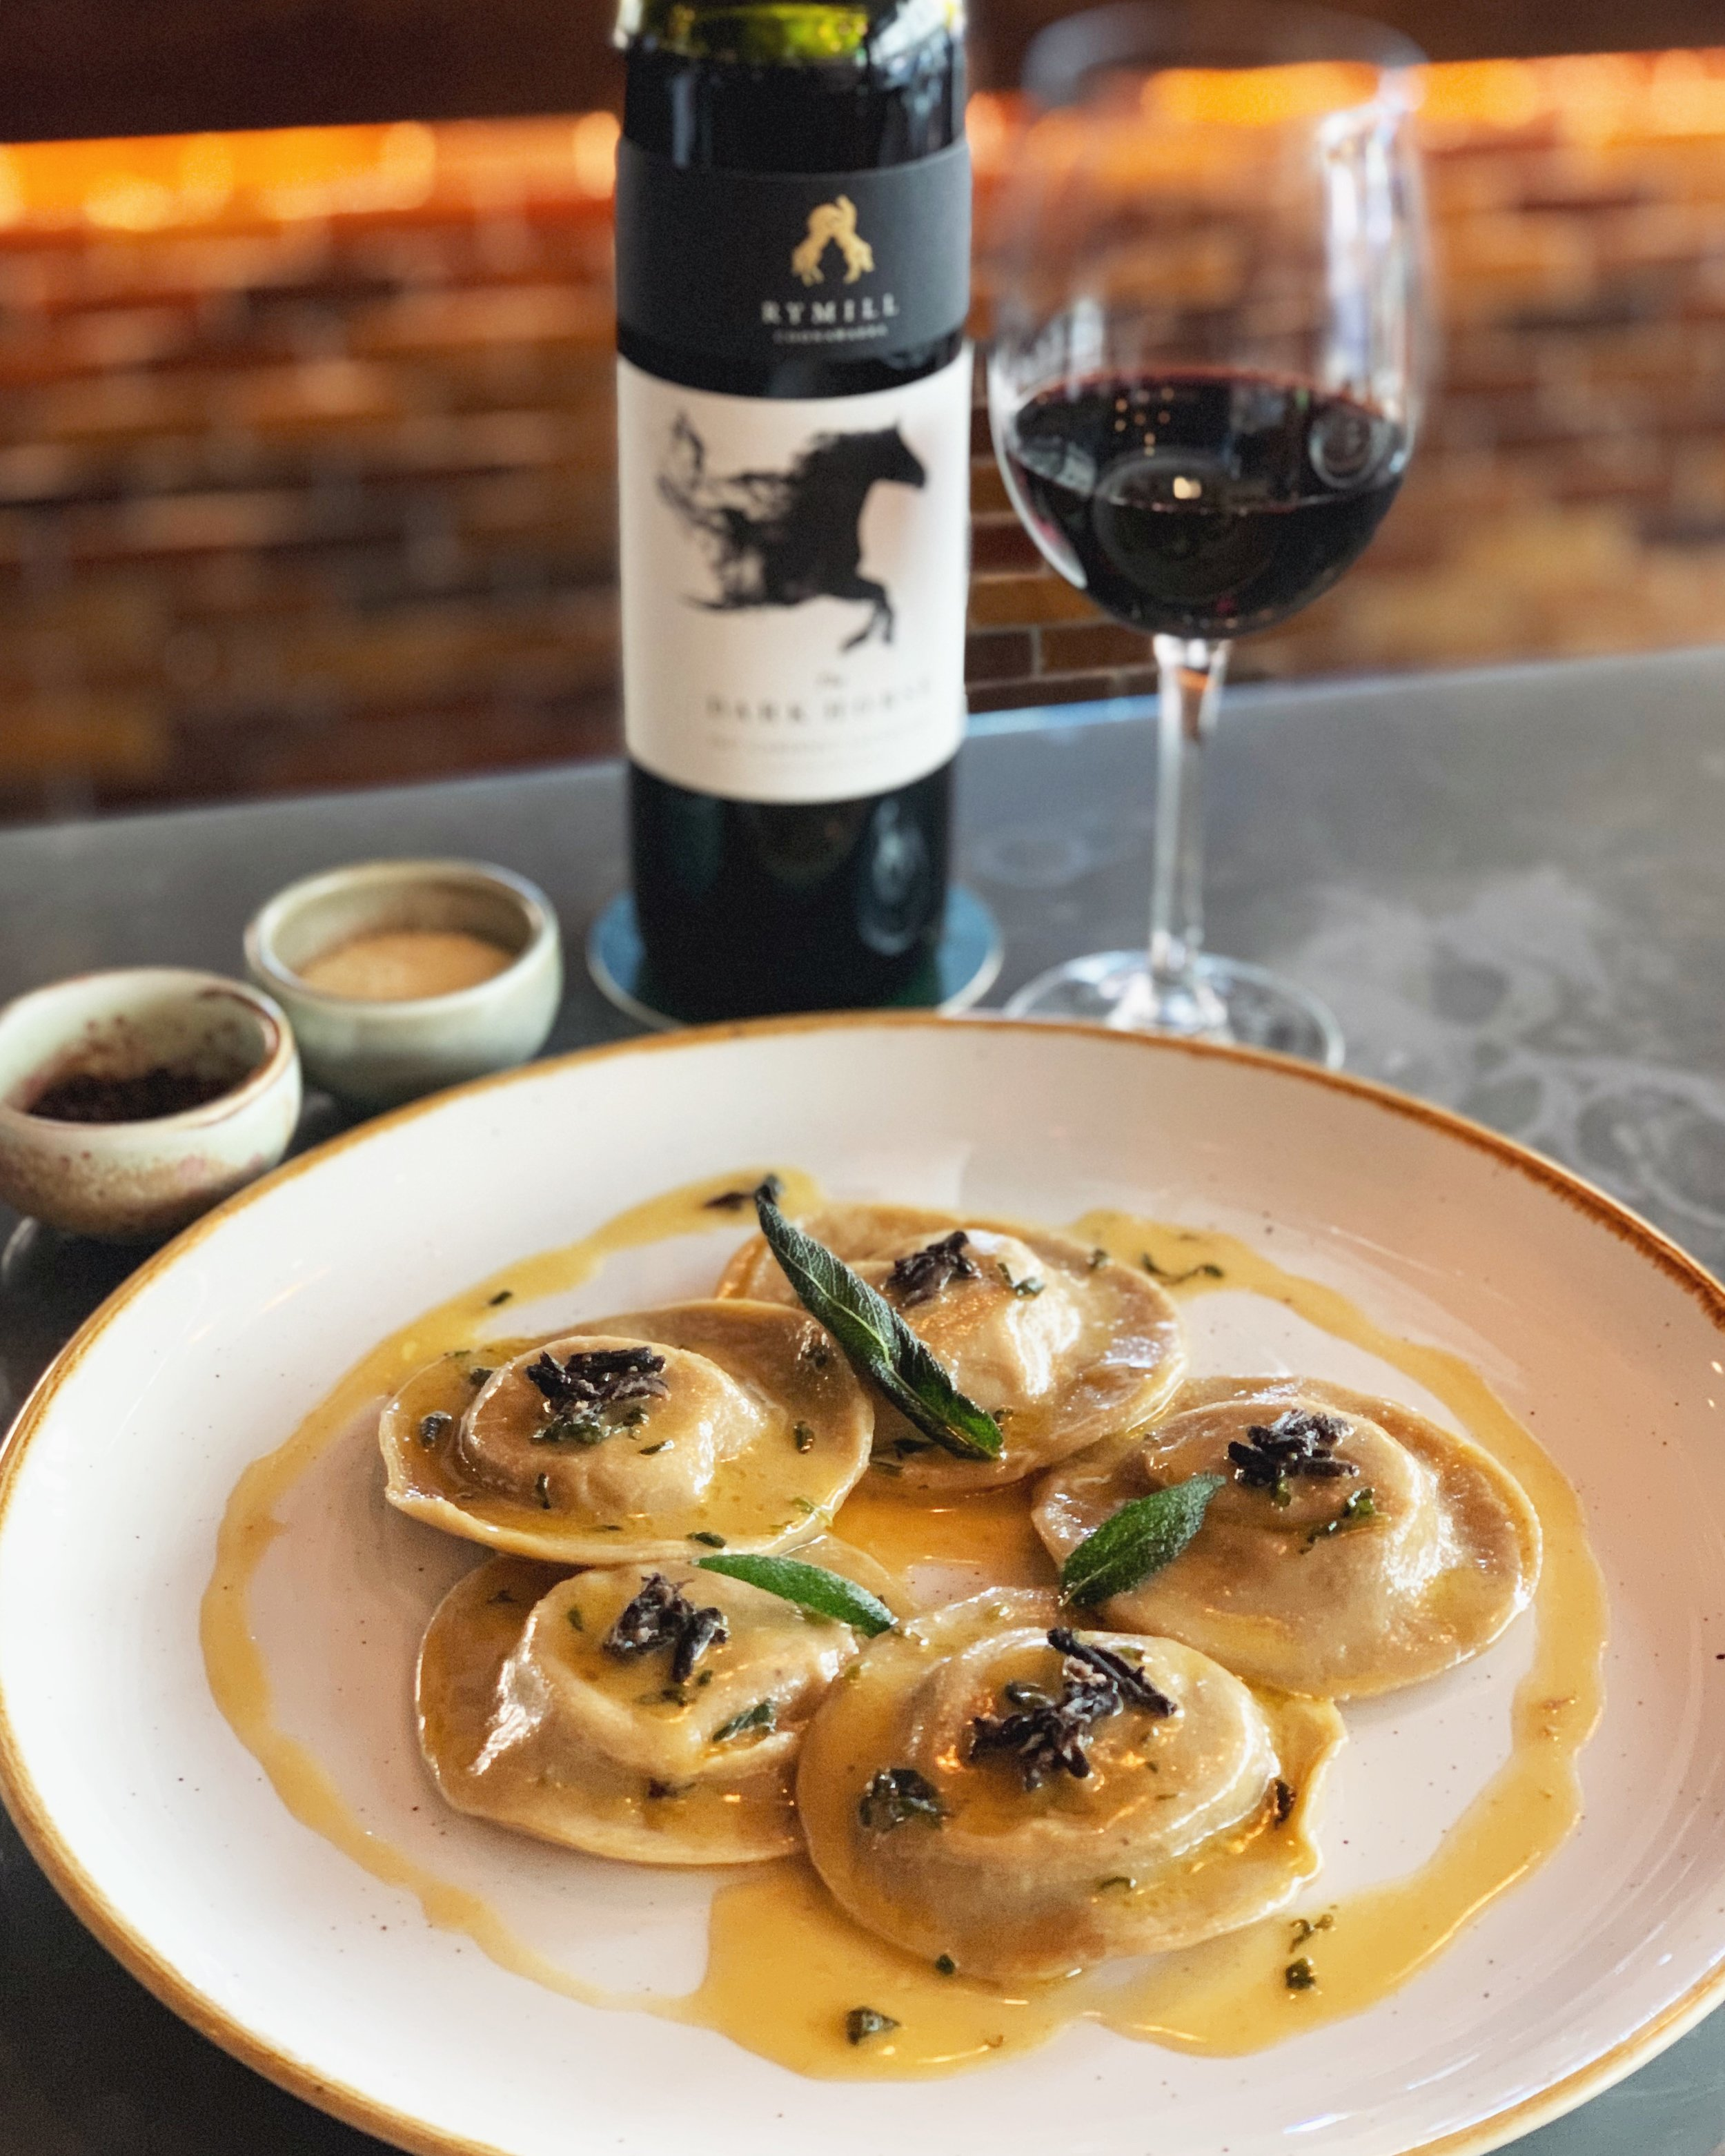 4-10 September - Special's out!~ R a v i o l i a l l ' A n a t r a ~These ravioli will take your taste buds to the next level of scrumptious umami flavours.// Truffle-infused handmade dumplings filled with confit duck dressed with burnt butter and sage. //Best enjoyed with a glass of Cabernet Sauvignon 👌🏻 .